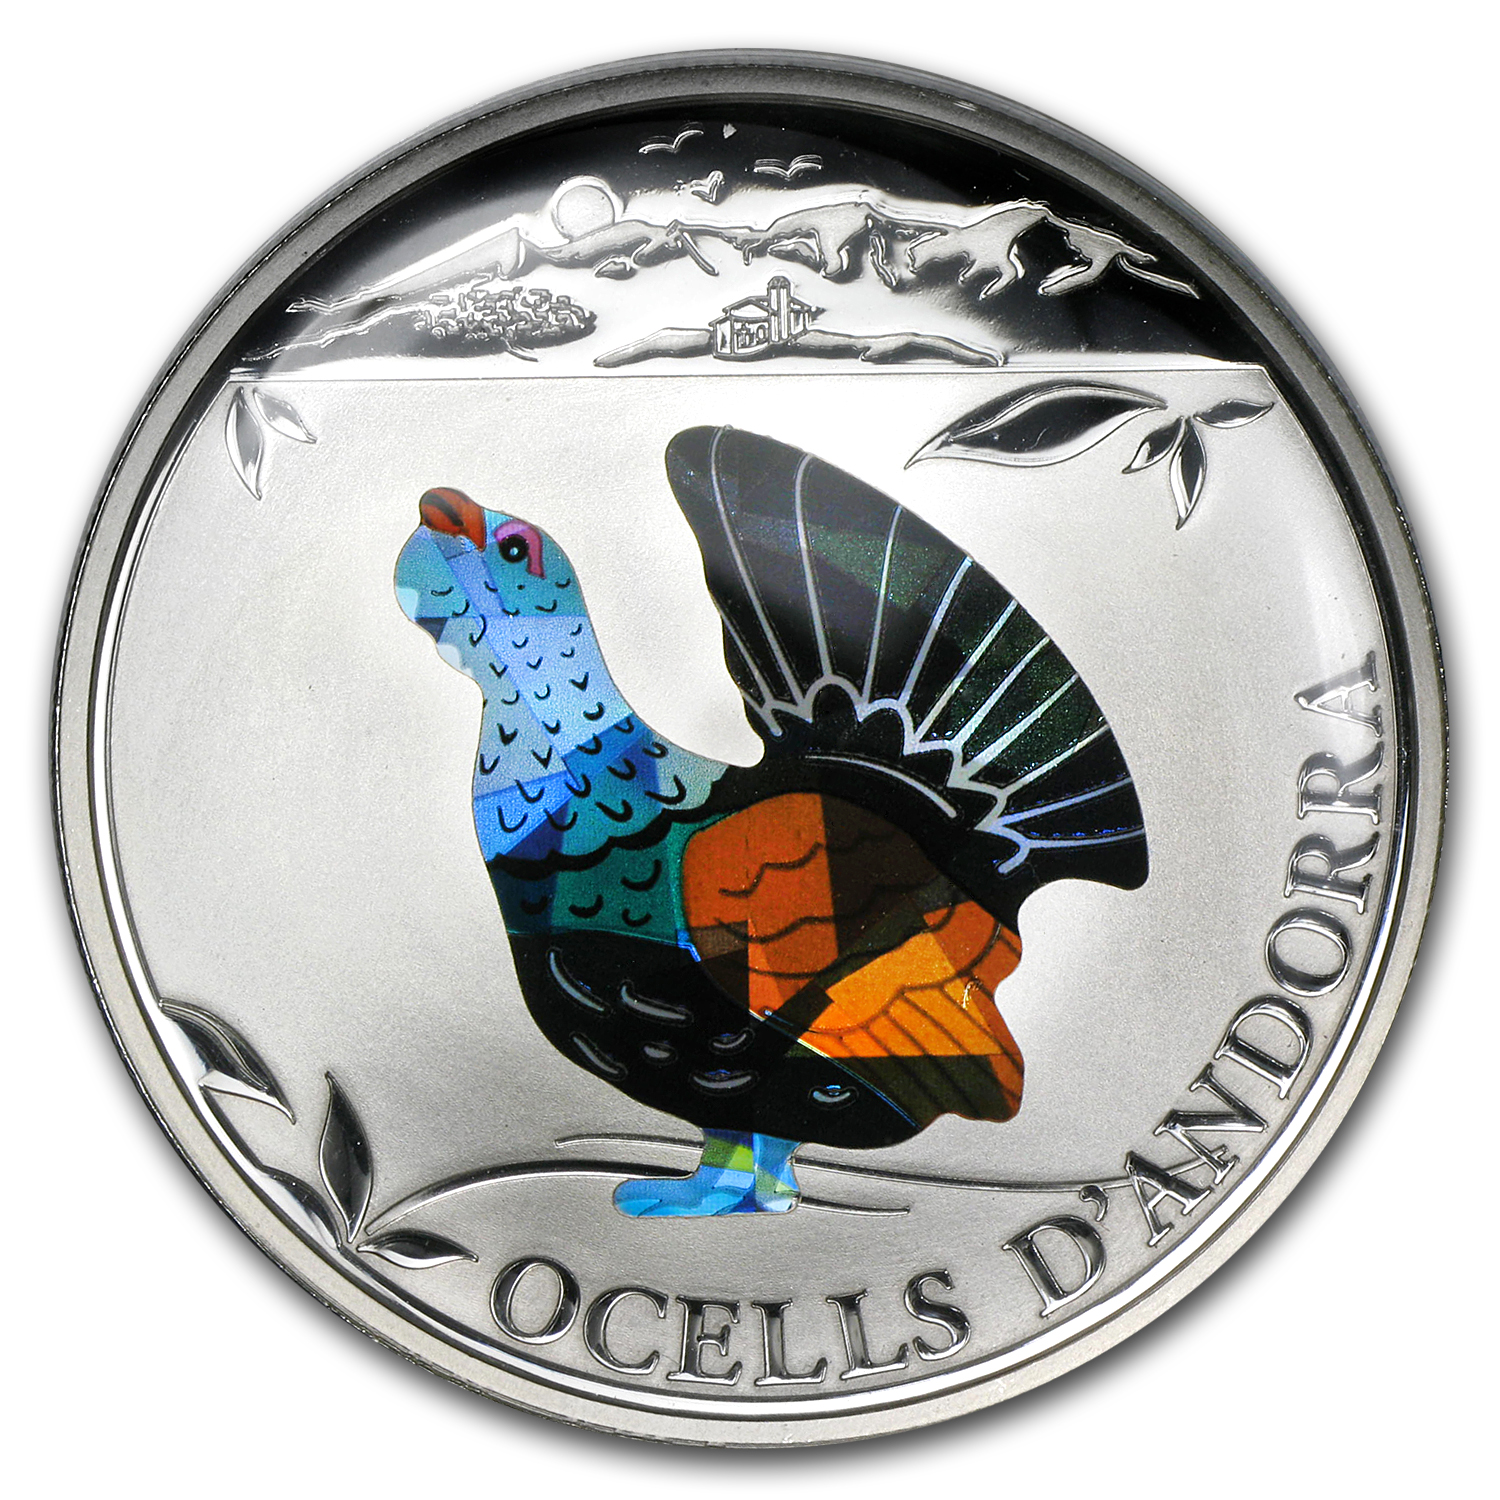 2012 Andorra Proof Silver 5 Diners Prism Birds Capercaillie